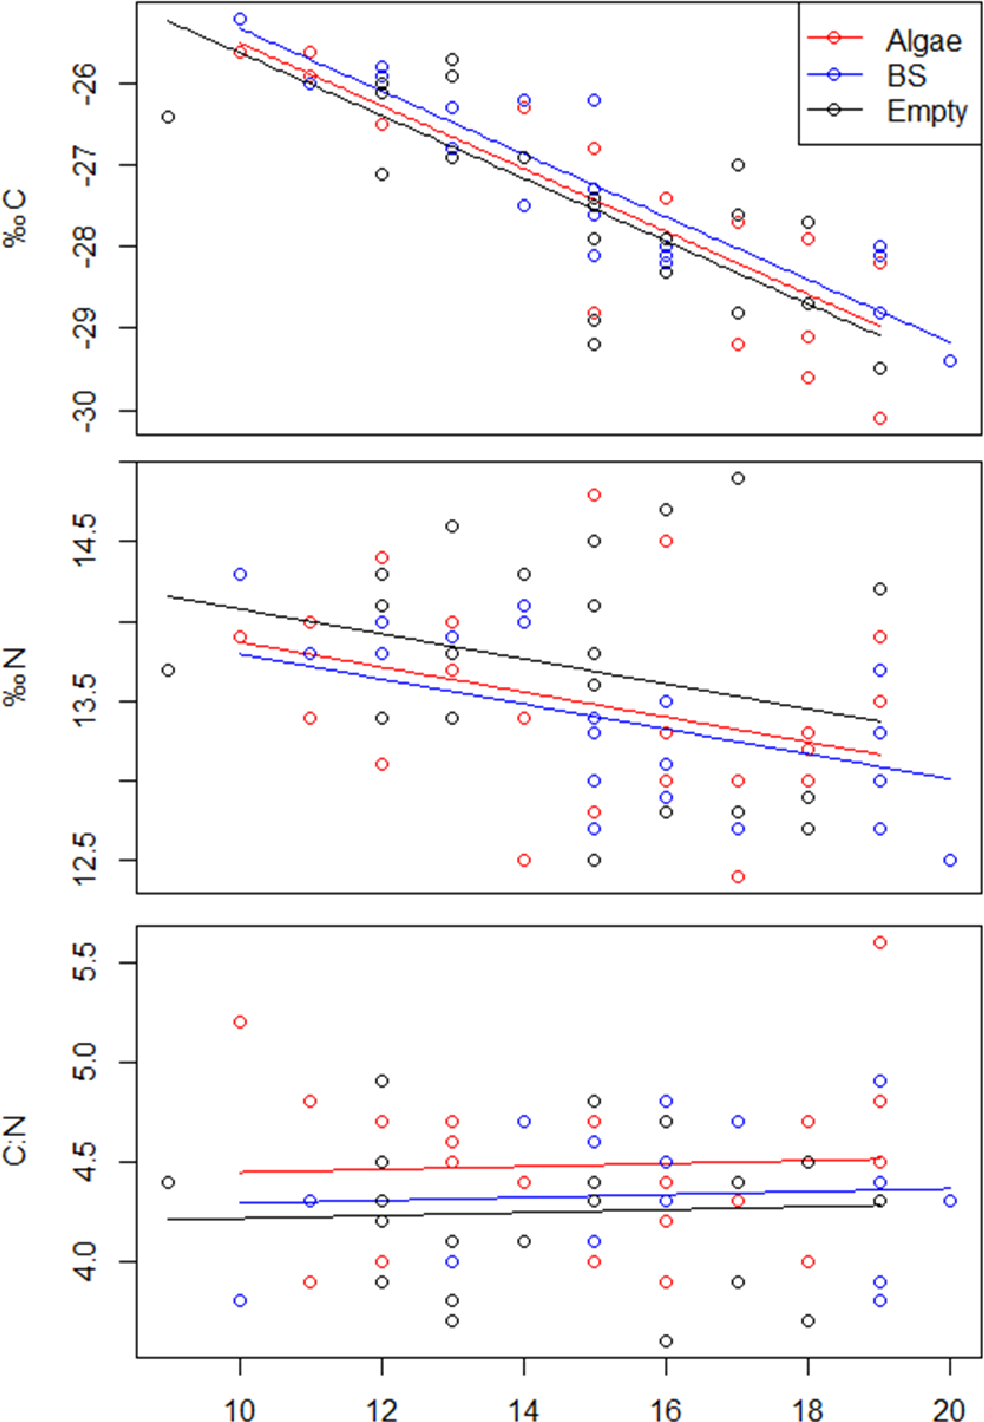 Figure 3: Linear regressions of δ 13 C, δ 15 N, and C:N as a function of body length for experimental Mysis with three different gut contents: green algae (algae), Artemia (BS), and nothing (empty)